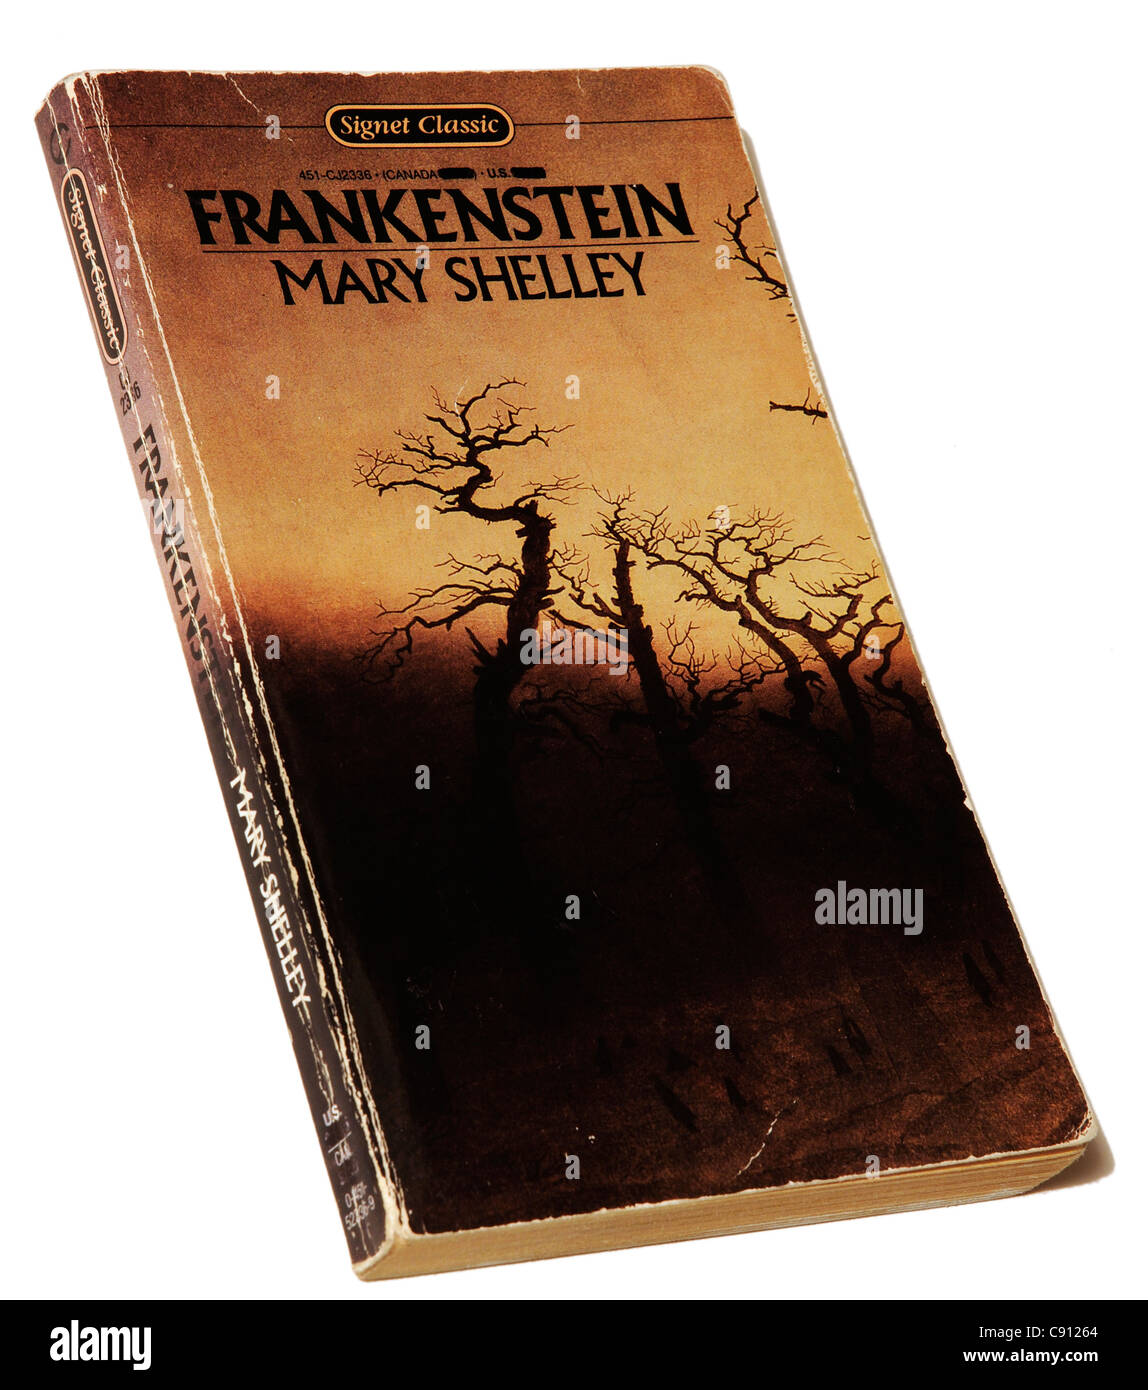 frankenstein by mary shelly Shelley's frankenstein has spoken to technological and cultural anxieties from the enlightenment to #metoo but its author's achievements have too often been dismissed or treated with scepticism.